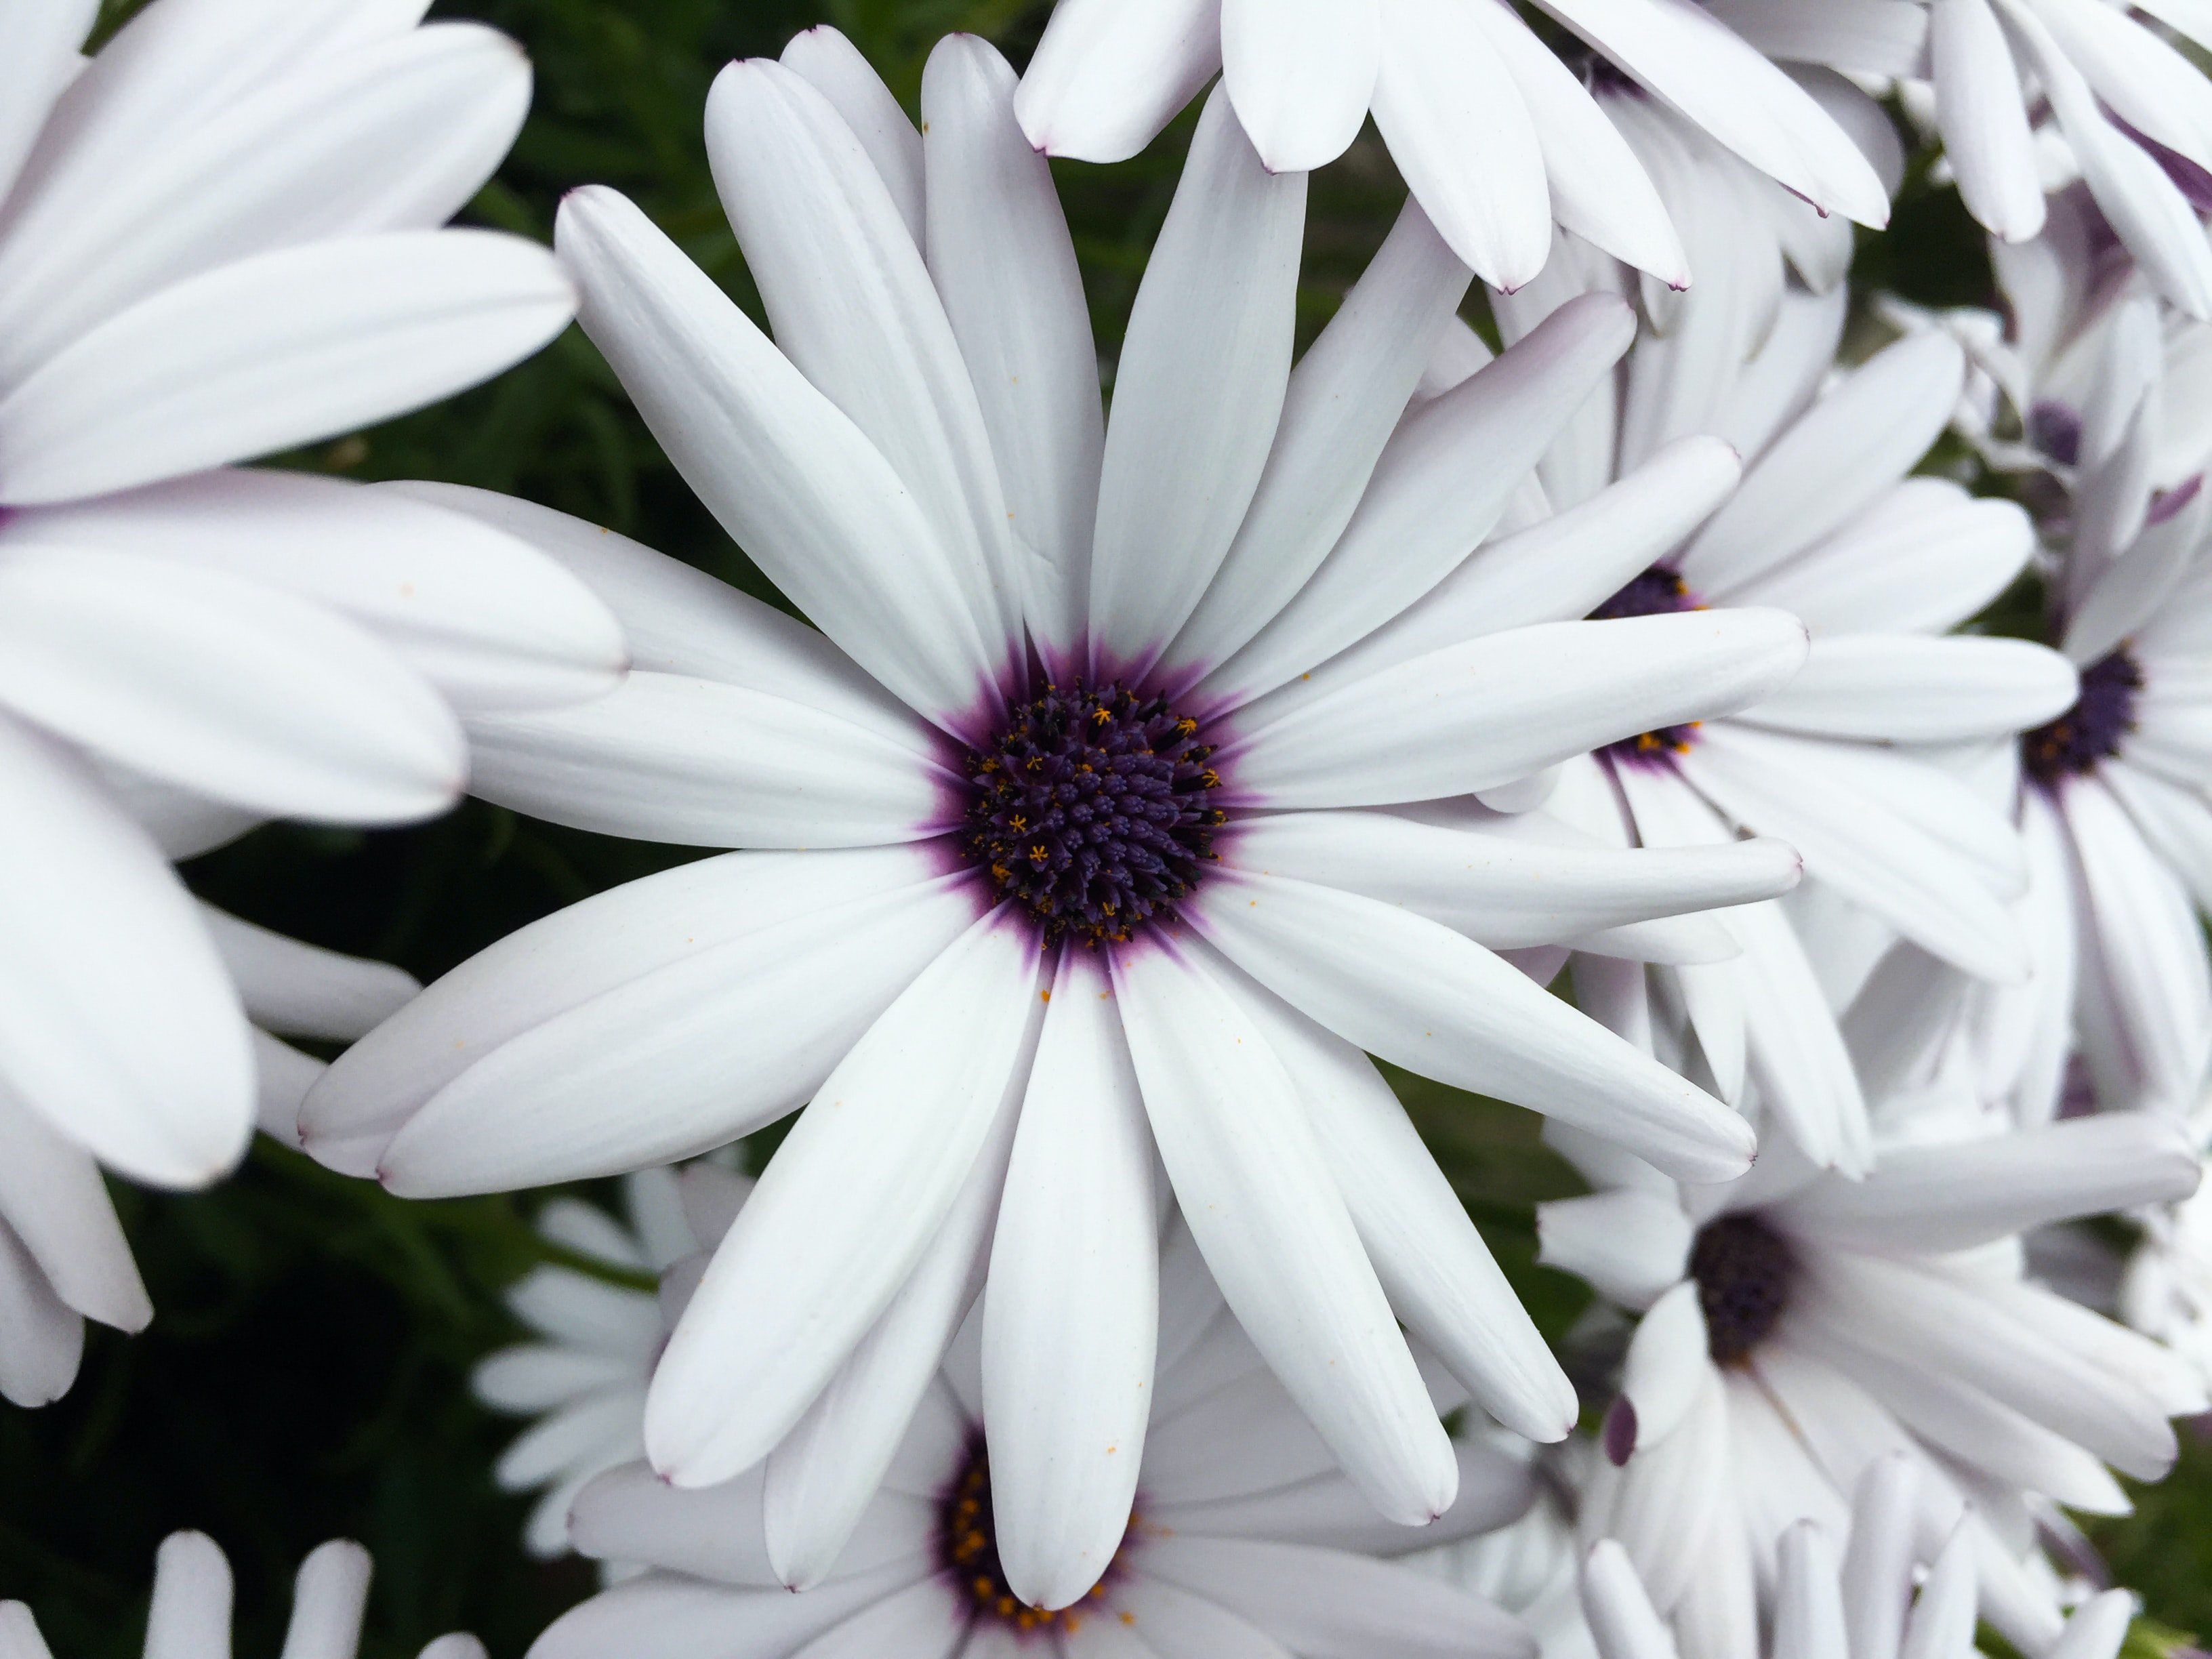 Macro shot of a white daisy with a deep violet center